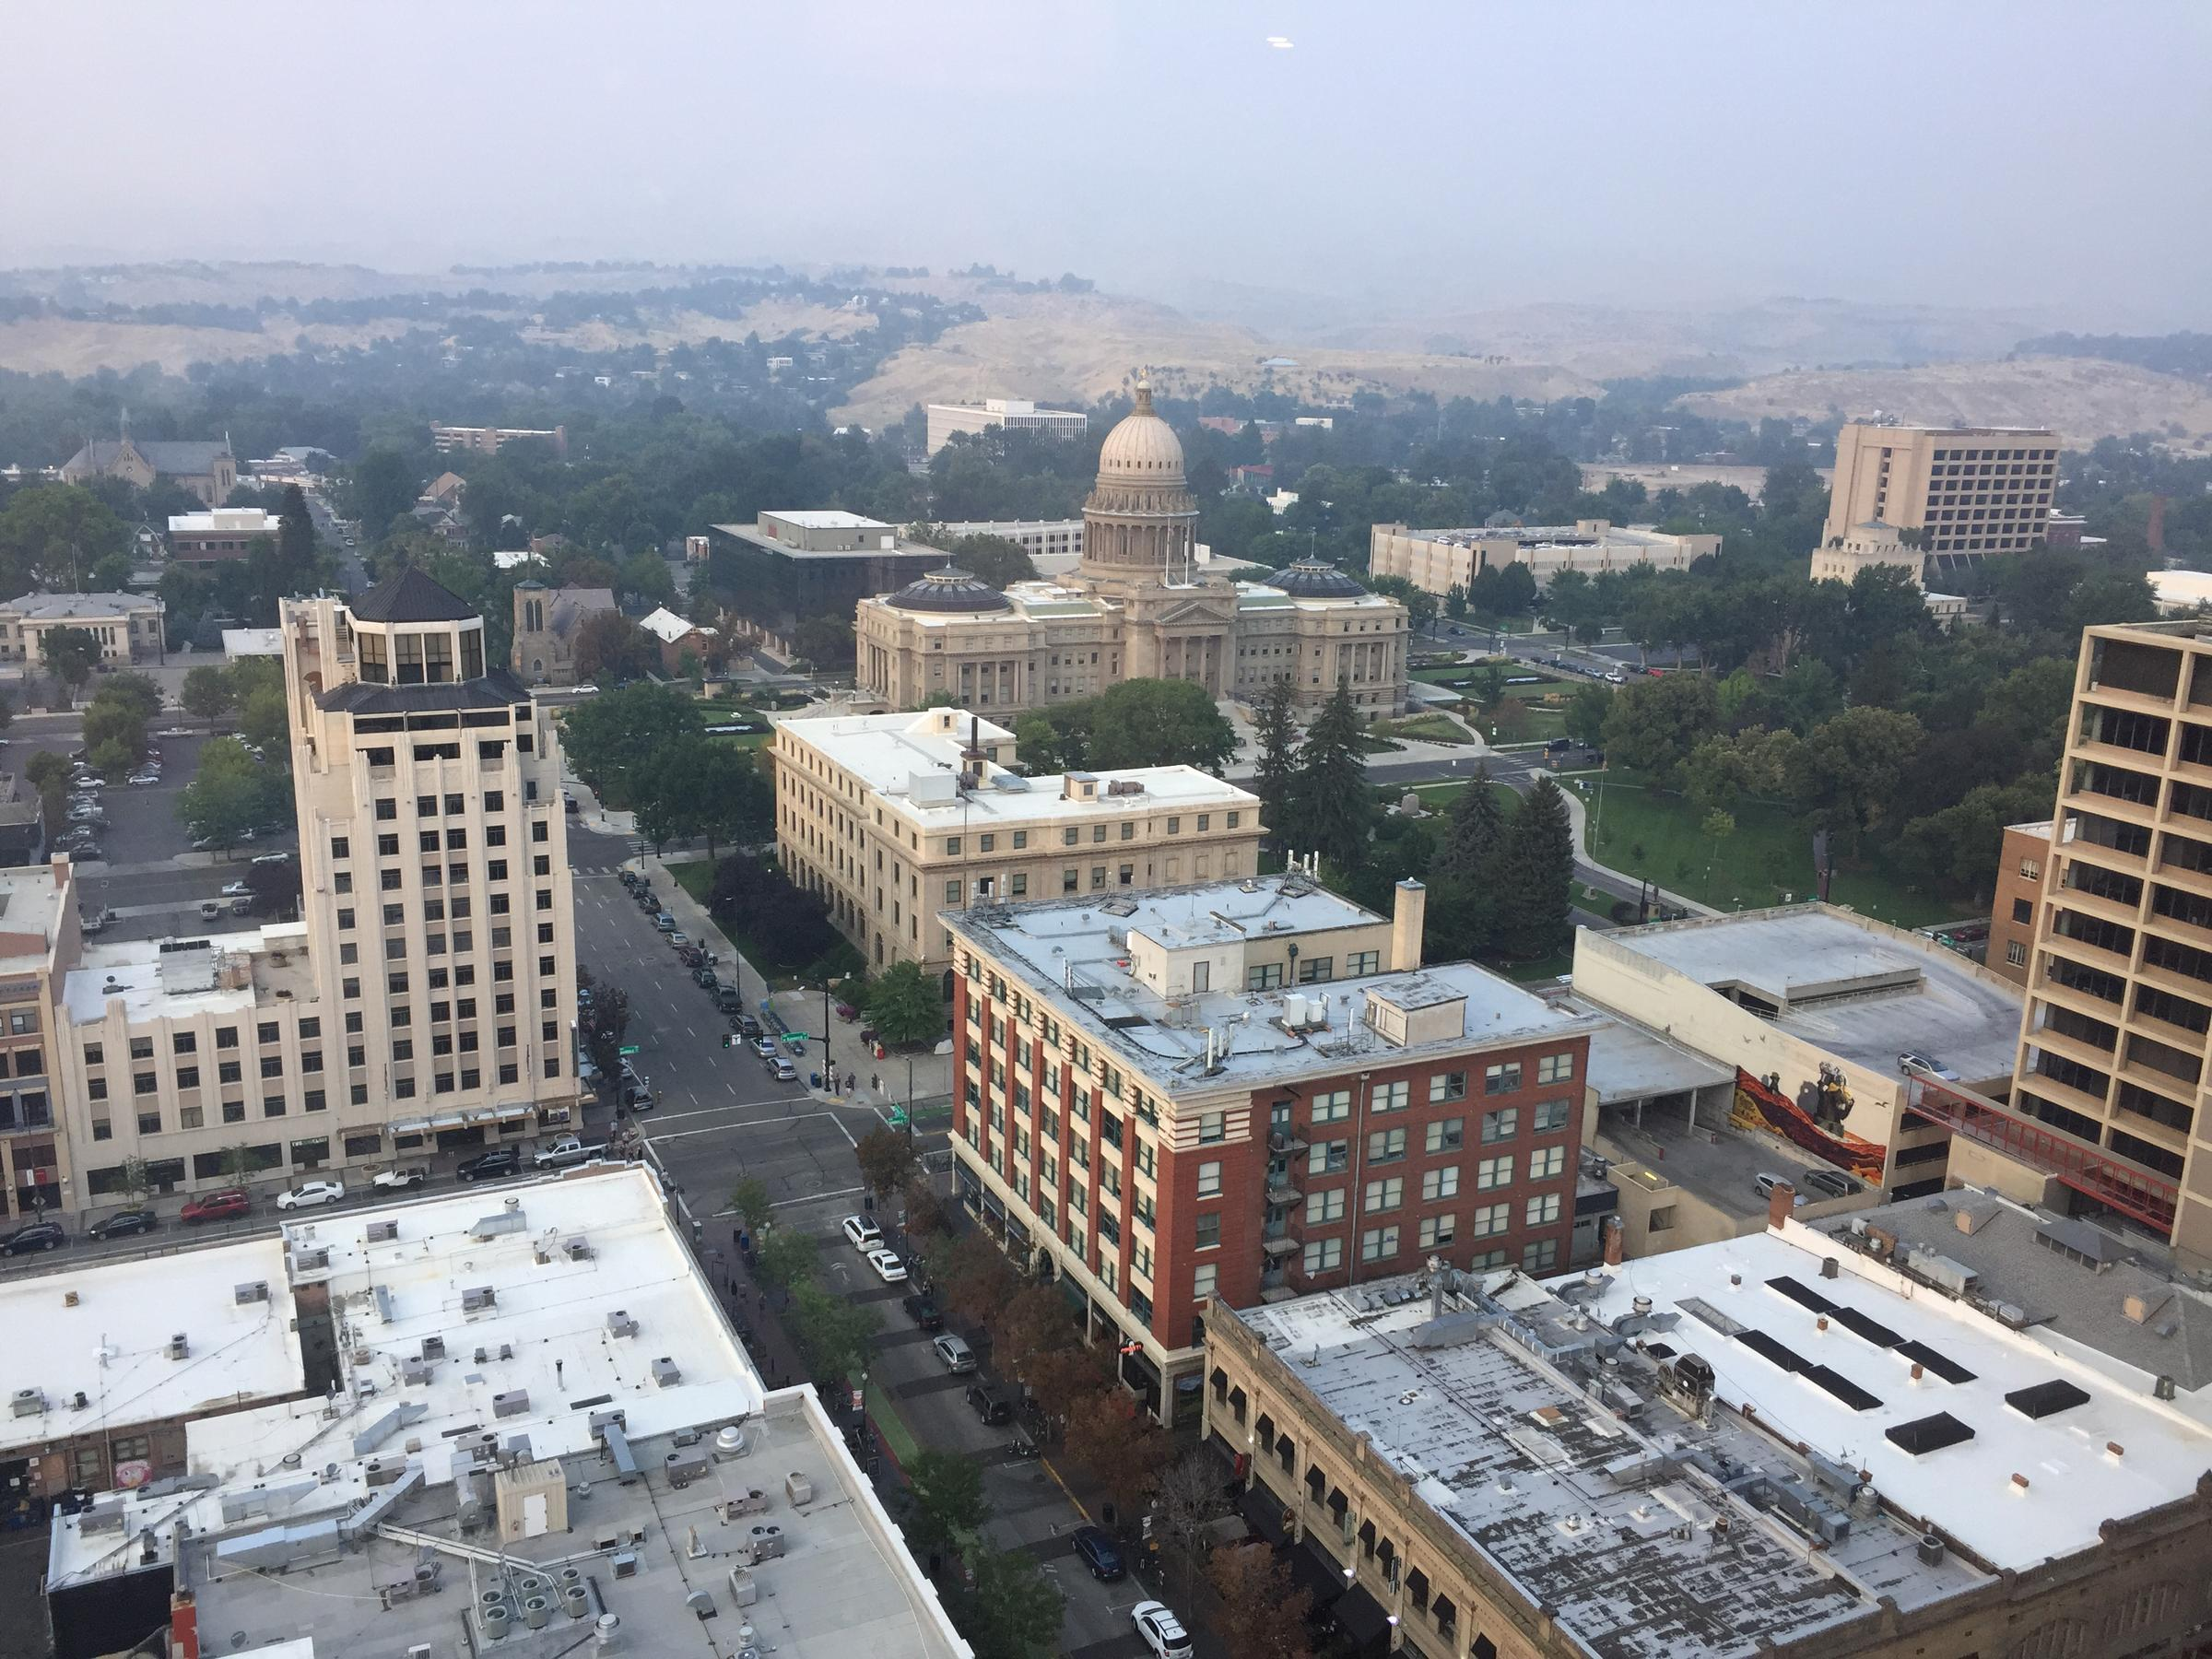 Smoke from wildfires causing unhealthy air conditions in Treasure Valley